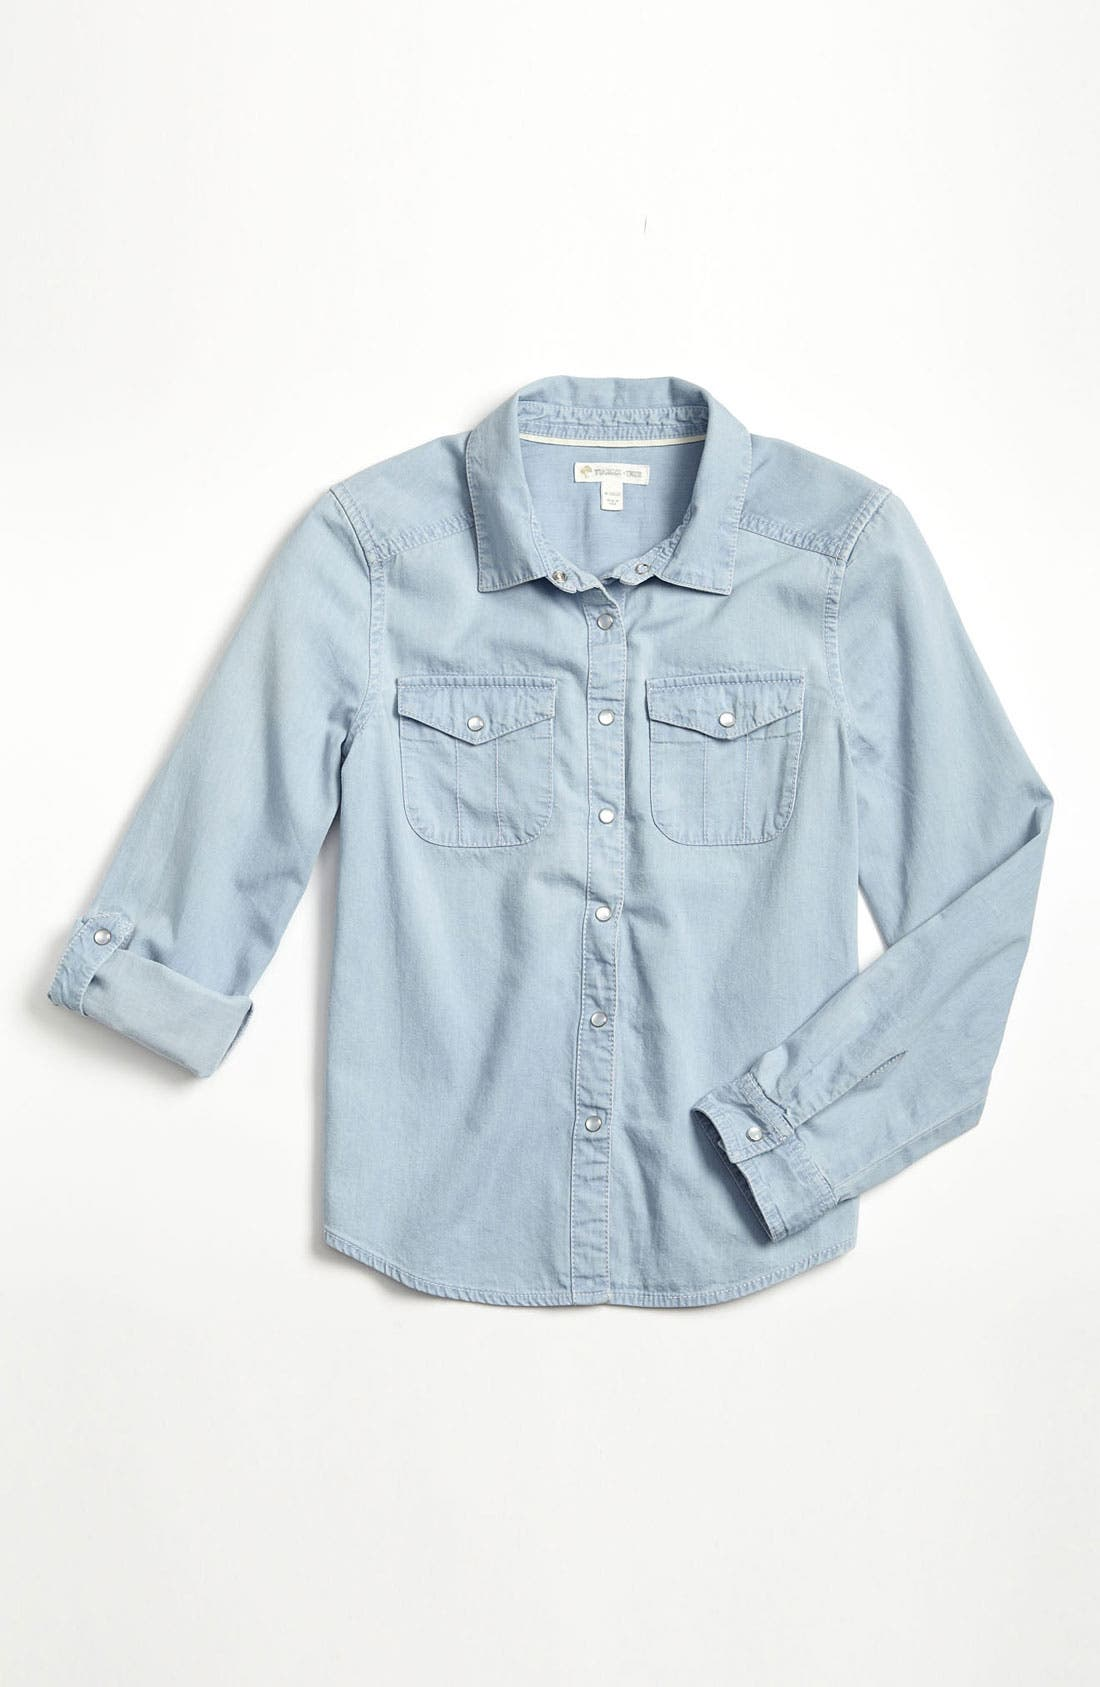 Alternate Image 1 Selected - Tucker + Tate 'Angie' Chambray Shirt (Big Girls)